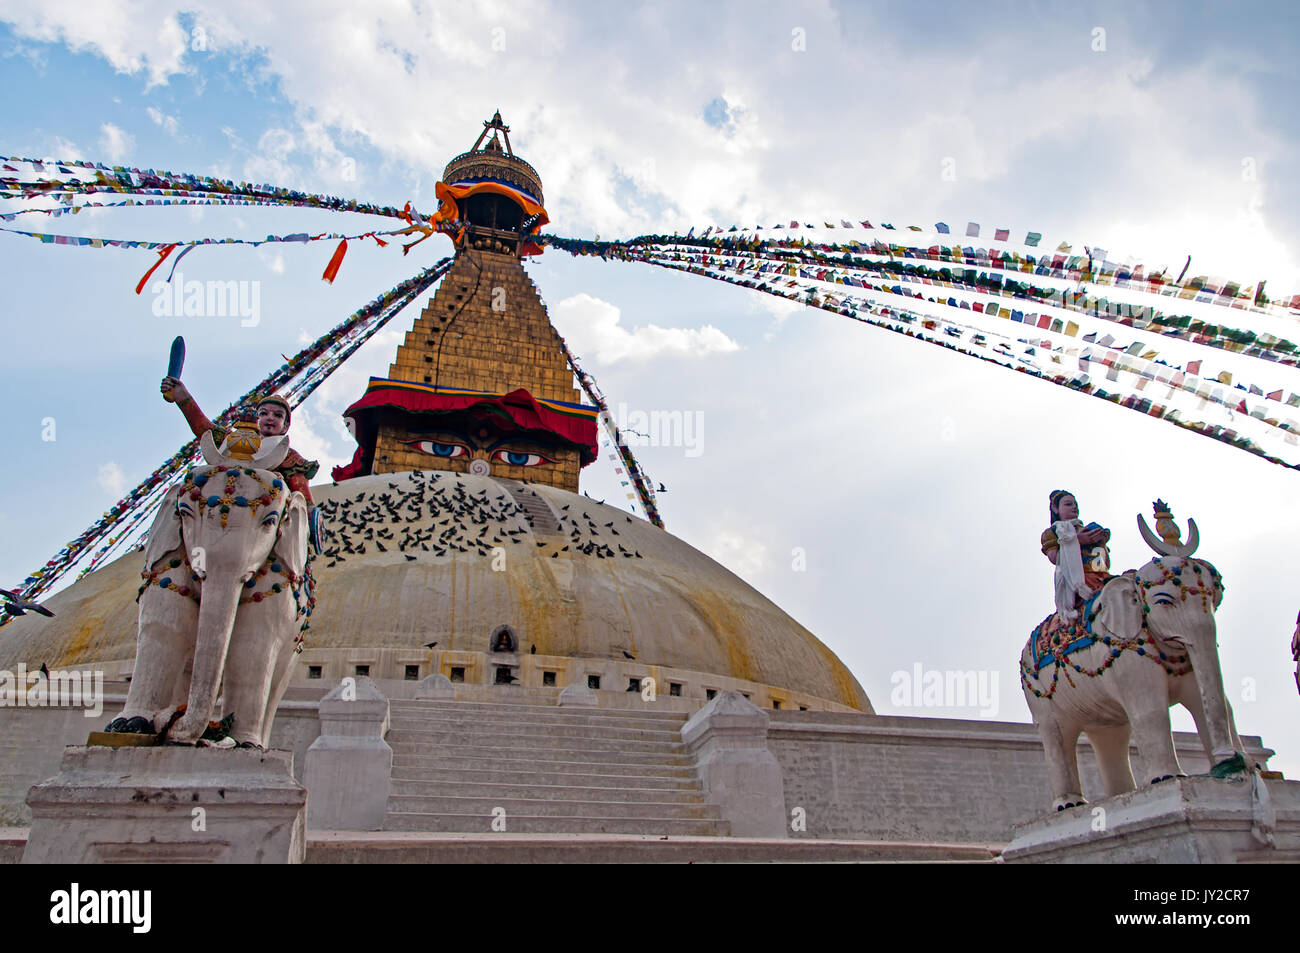 Back lit Bodhnath Stupa Temple and statues with overcast day. Boudhanath Stupa is the largest stupa in Nepal and the holiest Tibetan Buddhist temple o - Stock Image